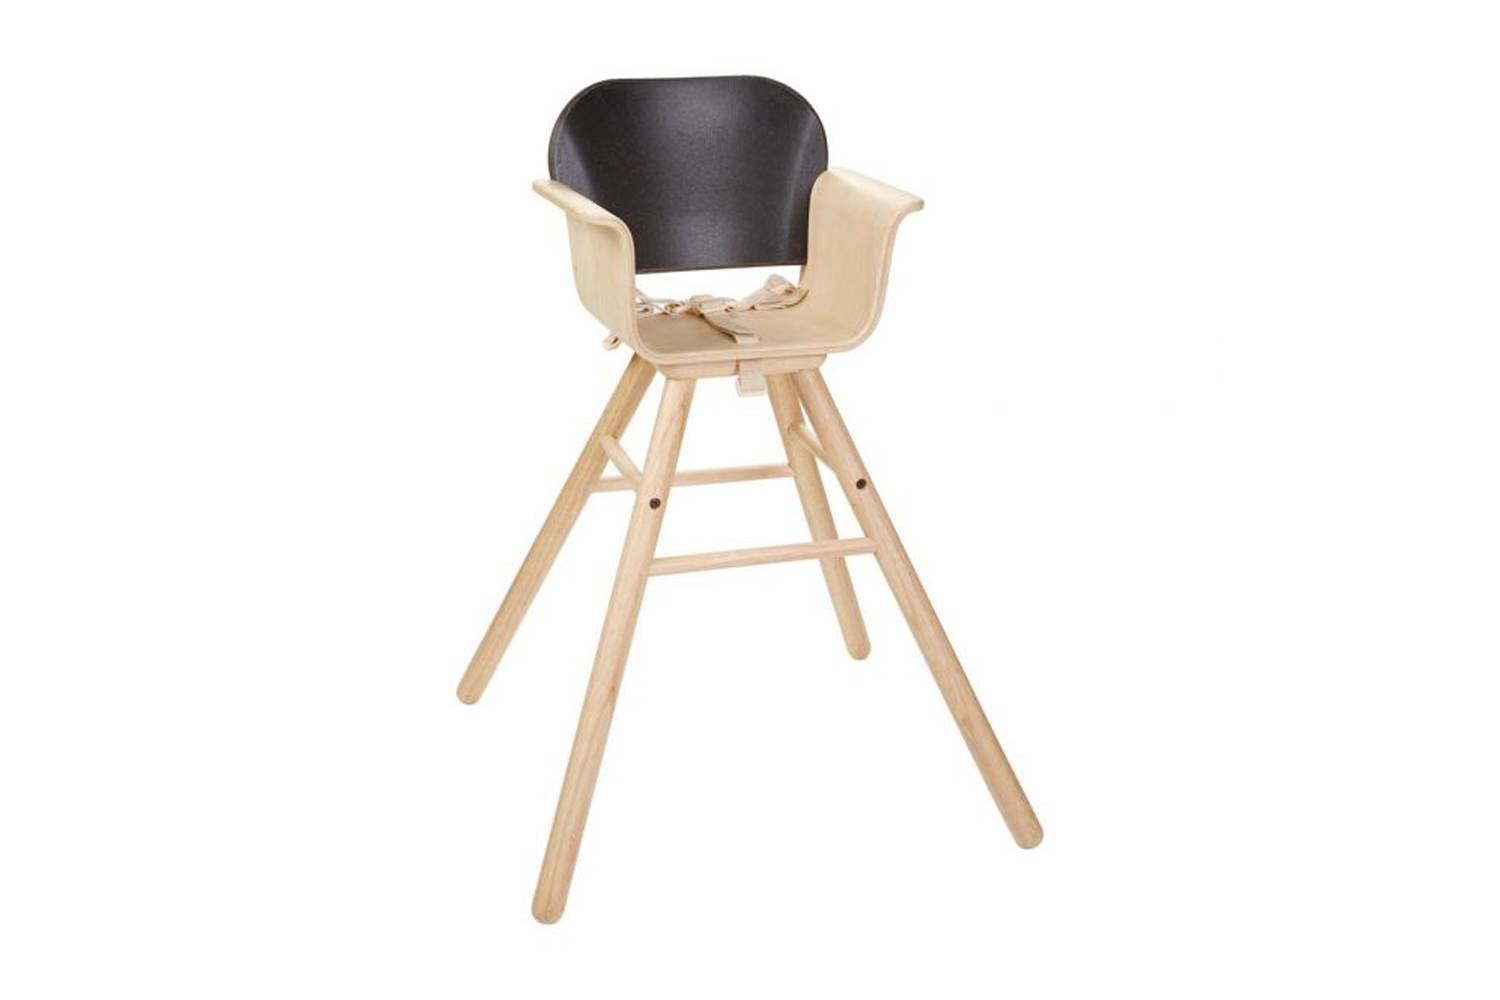 The Plan Toys High Chair in Black is available for $8.89 through sellers on Amazon.